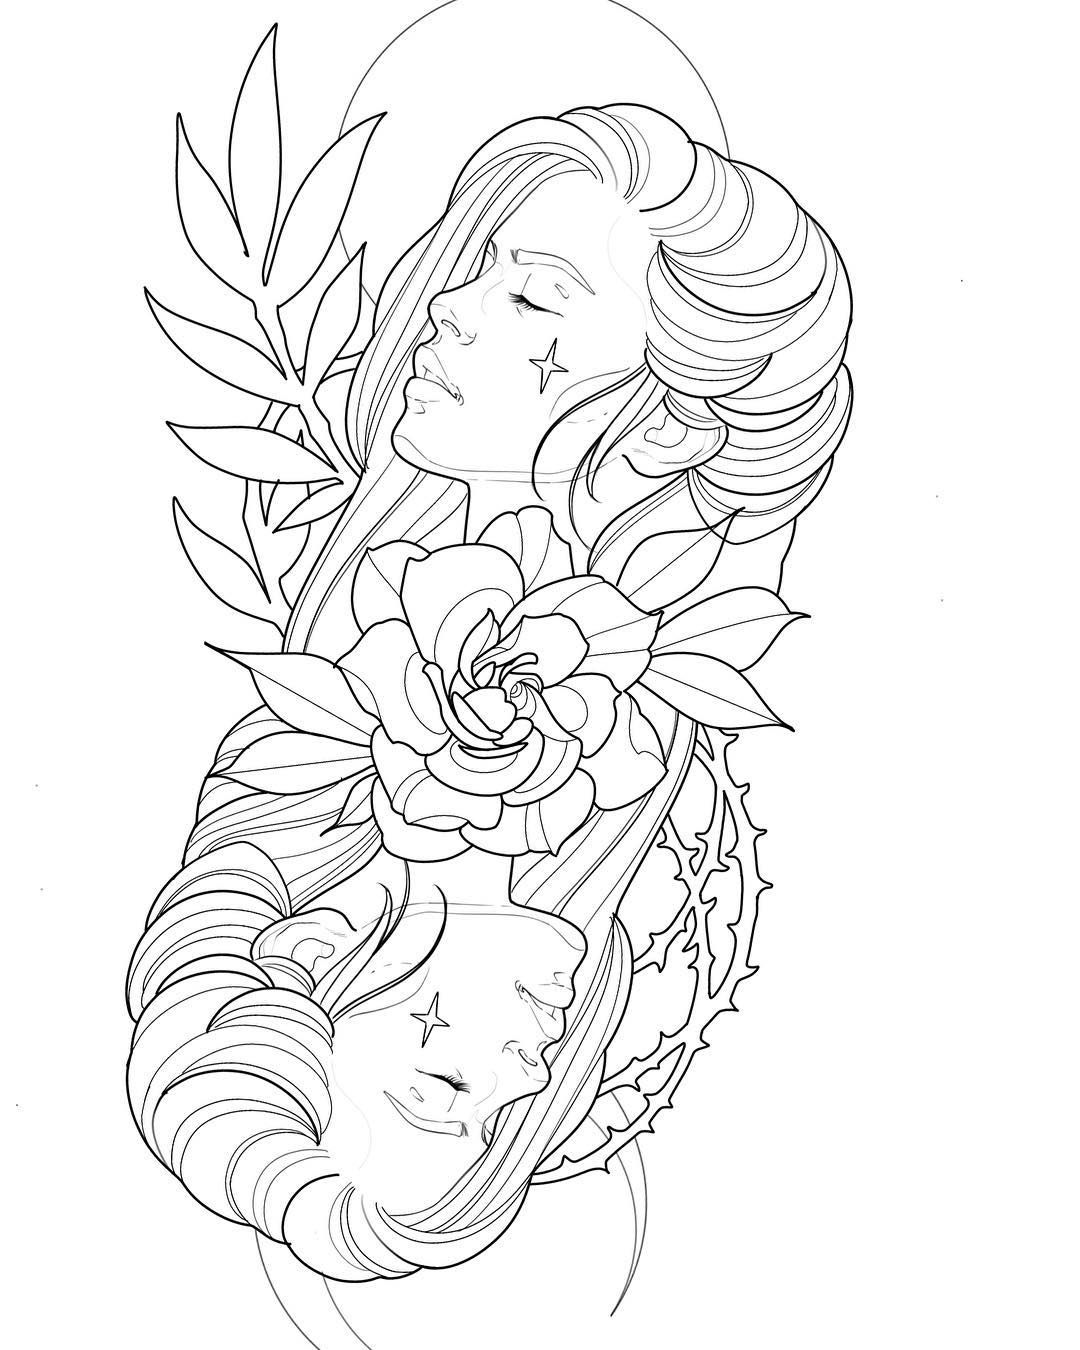 Tattoo Outline Designs : tattoo, outline, designs, Instagram:, Citas, Mail:, Kuru73@gmail.com, #tattoo, #tattooflash, #newsc…, Pattern, Tattoo,, Tattoo, Outline, Drawing,, Stencils